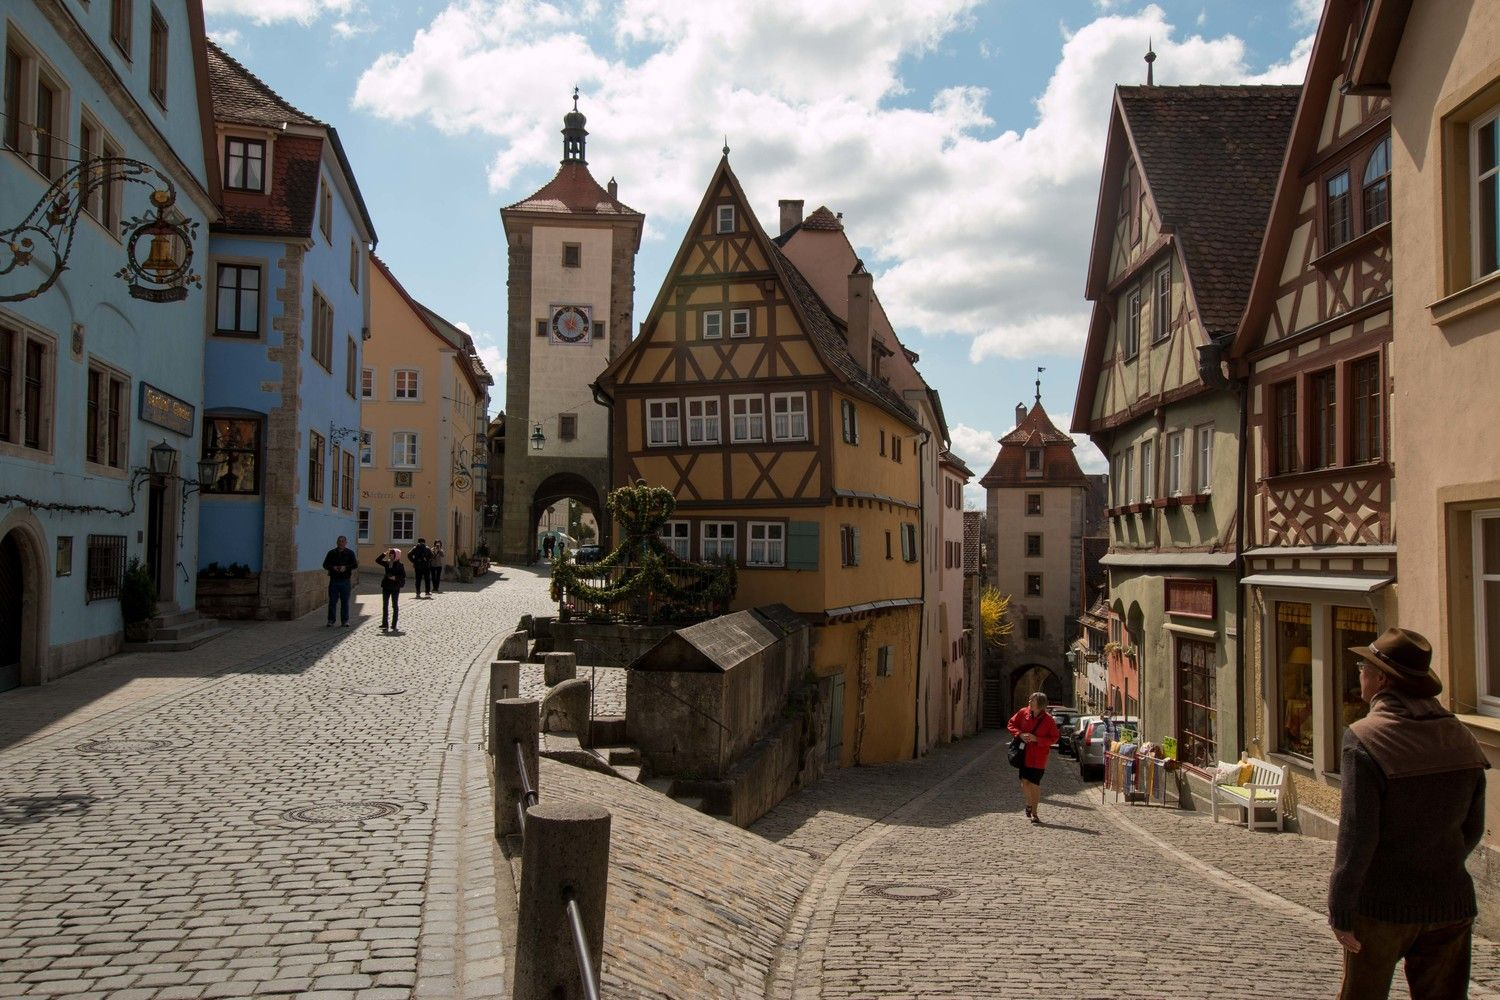 6 Things To Do In Rothenburg Ob Der Tauber Submerged Oaks Rothenburg Ob Der Tauber European Road Trip Rothenburg